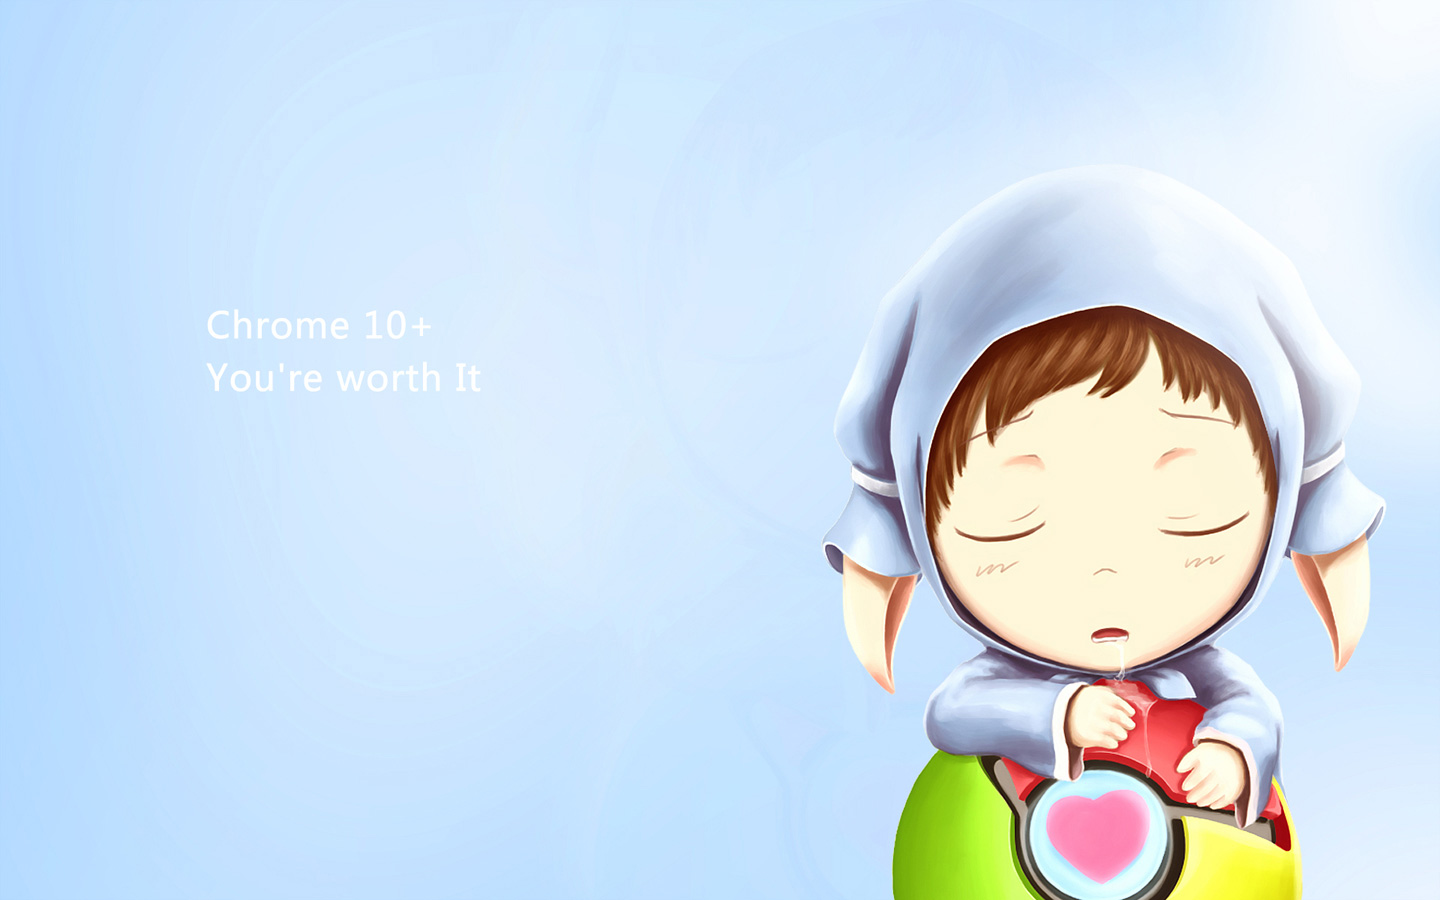 Sweet Anime Love Wallpaper Desktop : cute Anime Wallpapers for Desktop - WallpaperSafari